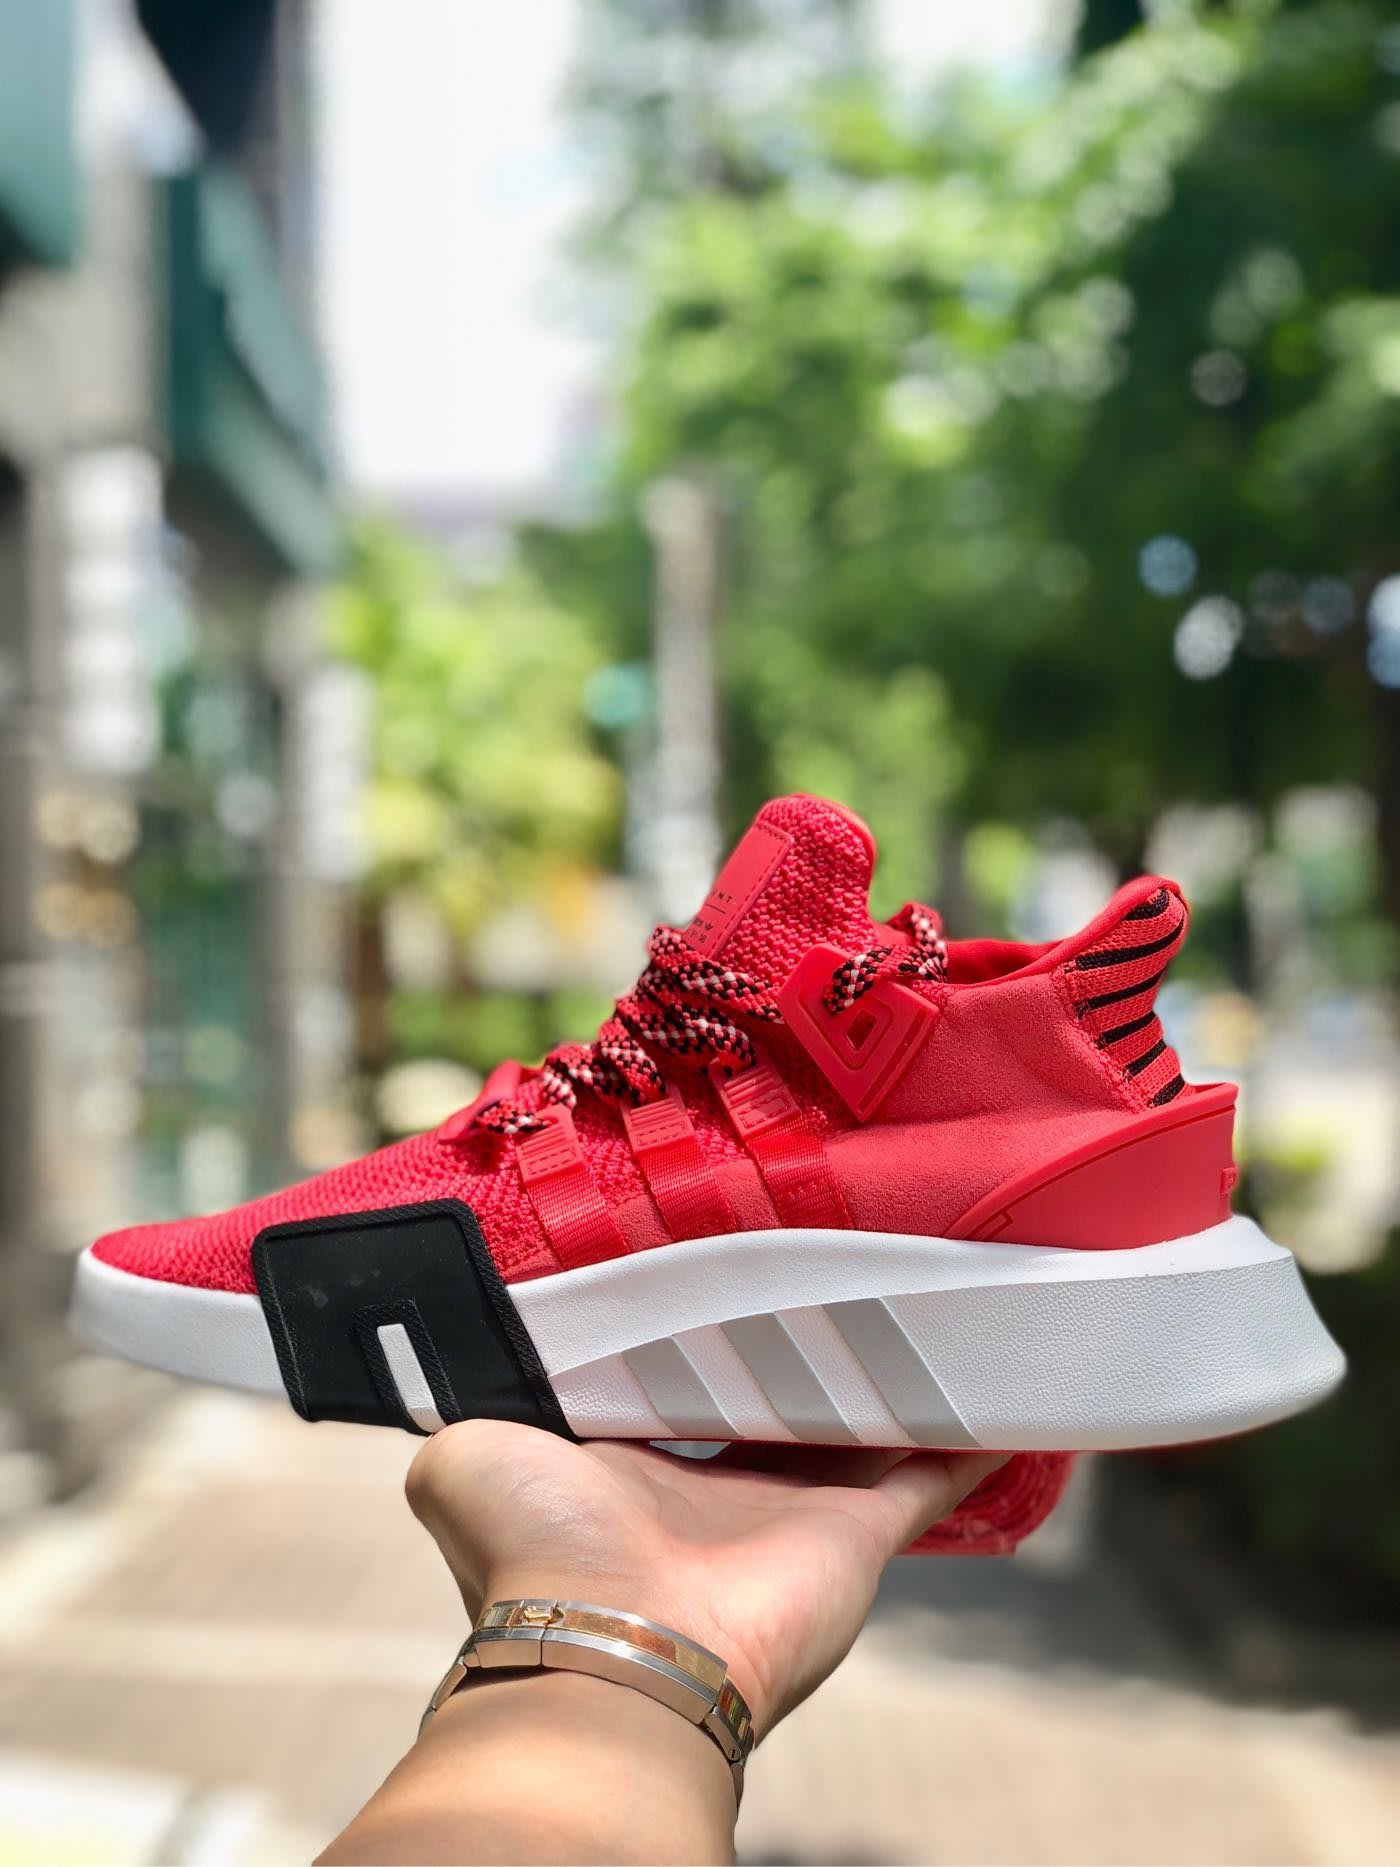 Cheers】adidas EQT Bask ADV Red 紅 紅白